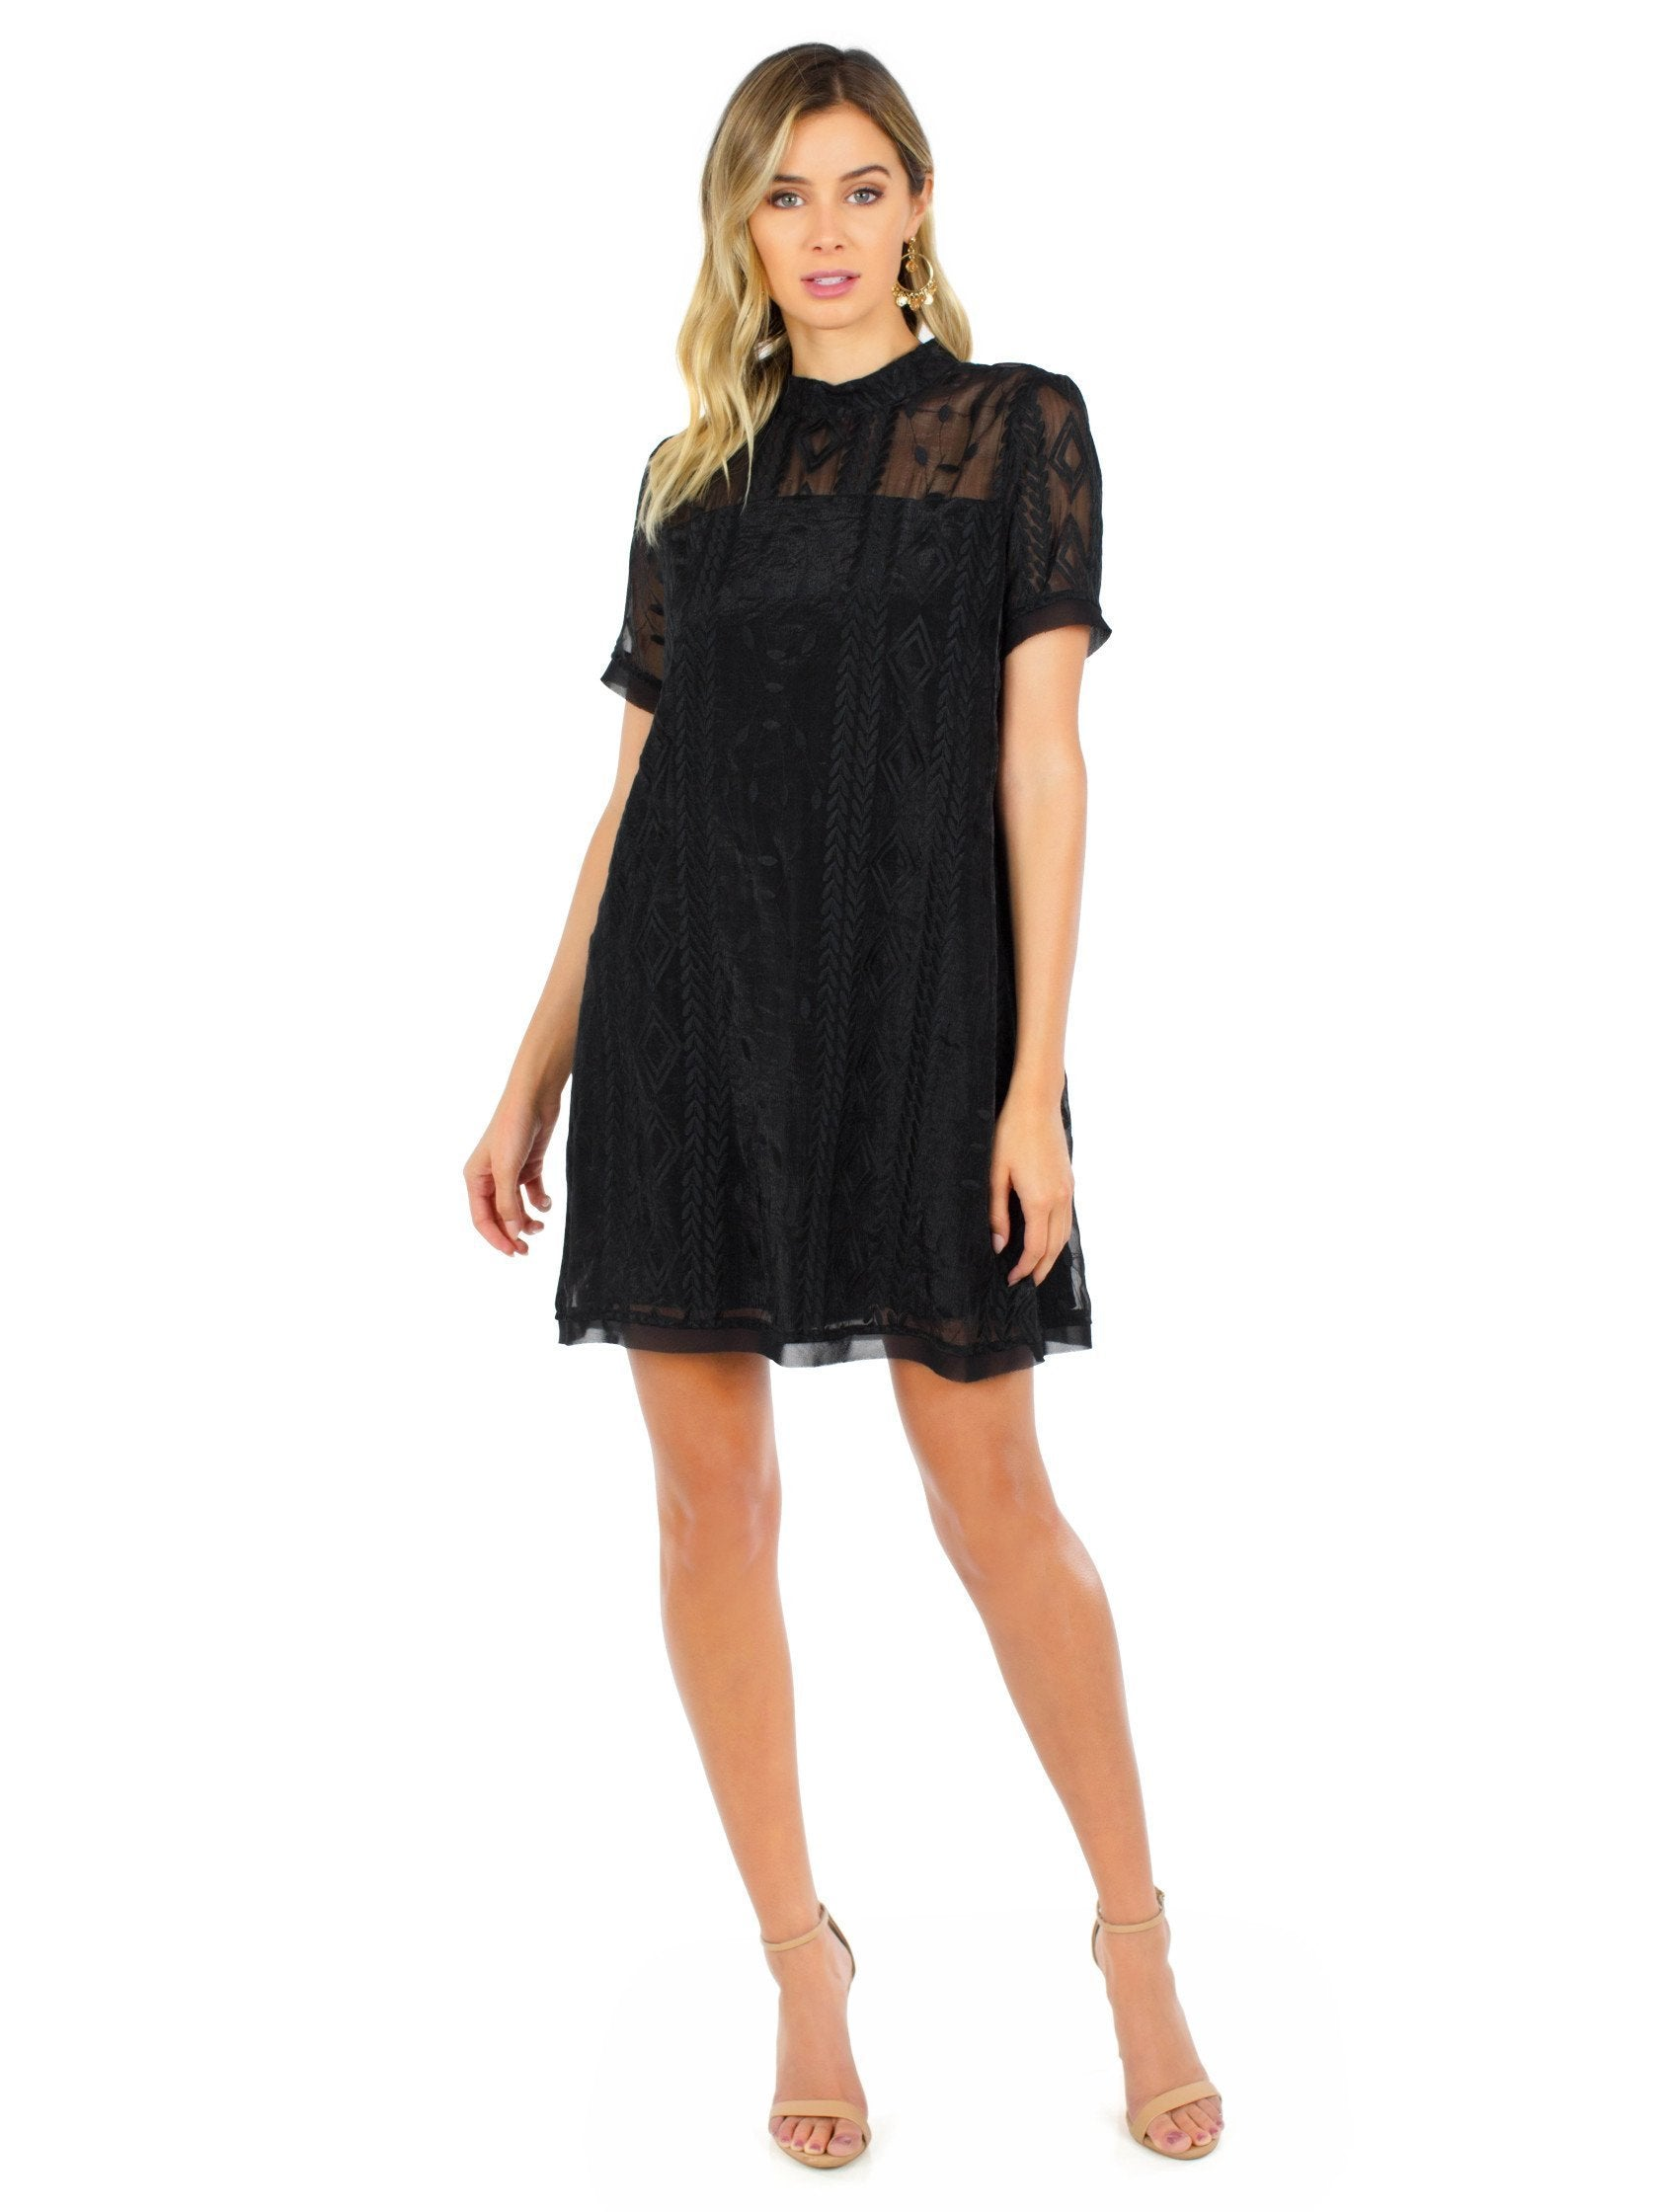 Girl outfit in a dress rental from Moon River called Organza Lace Dress